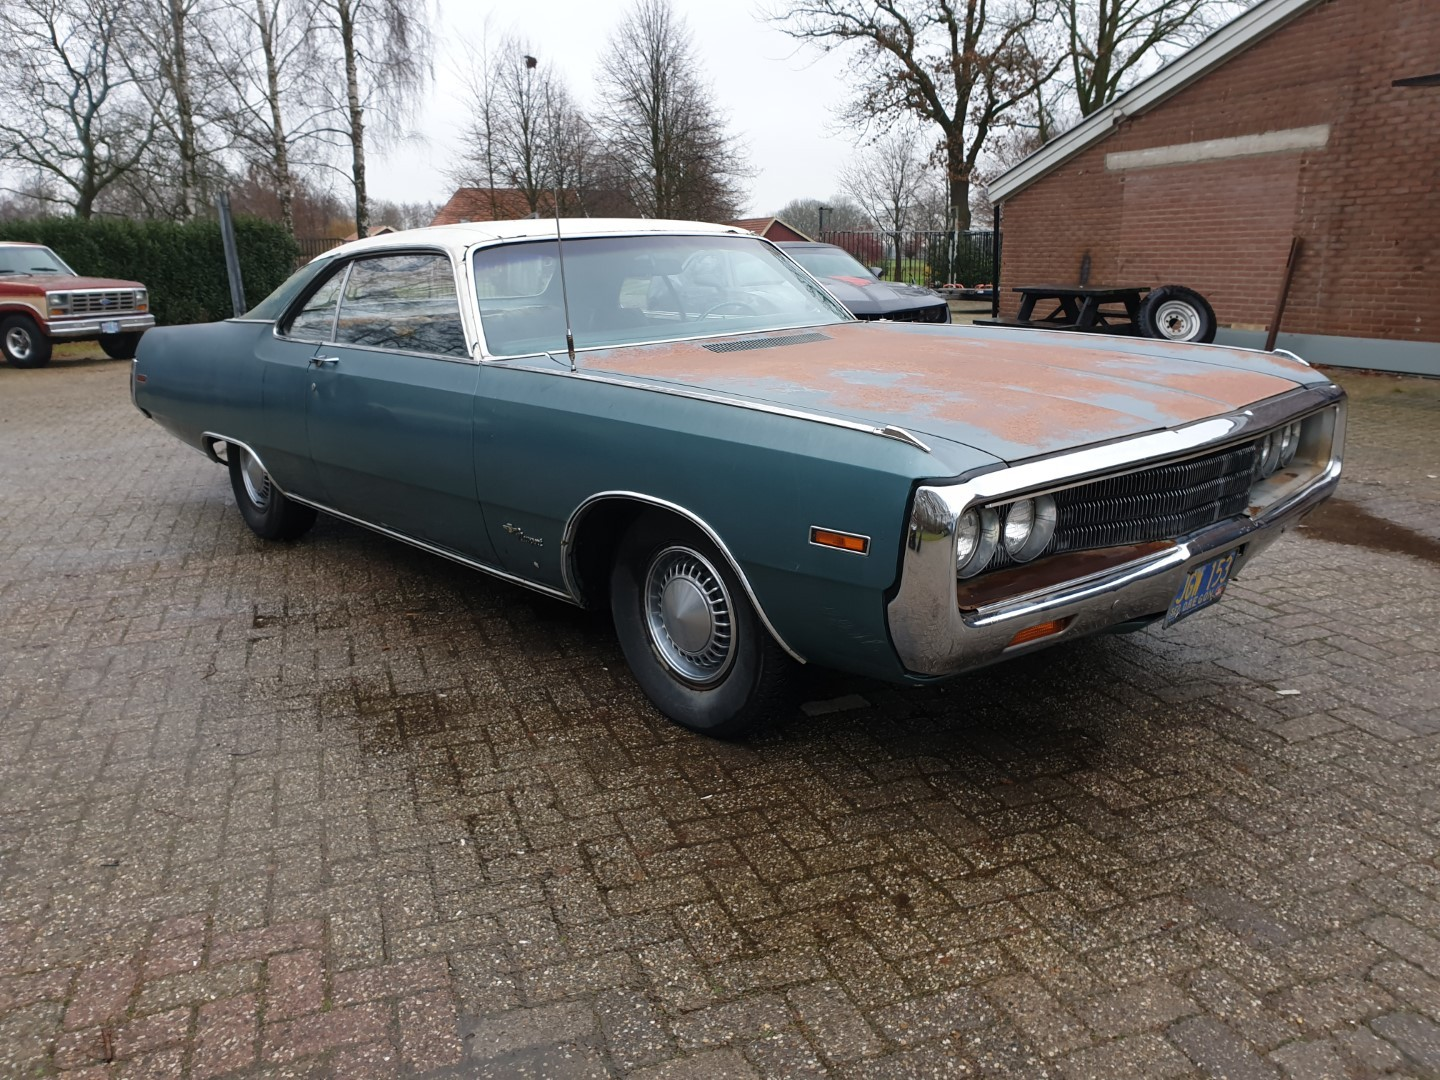 1970-Chrysler-Newport-383ci-V8-8